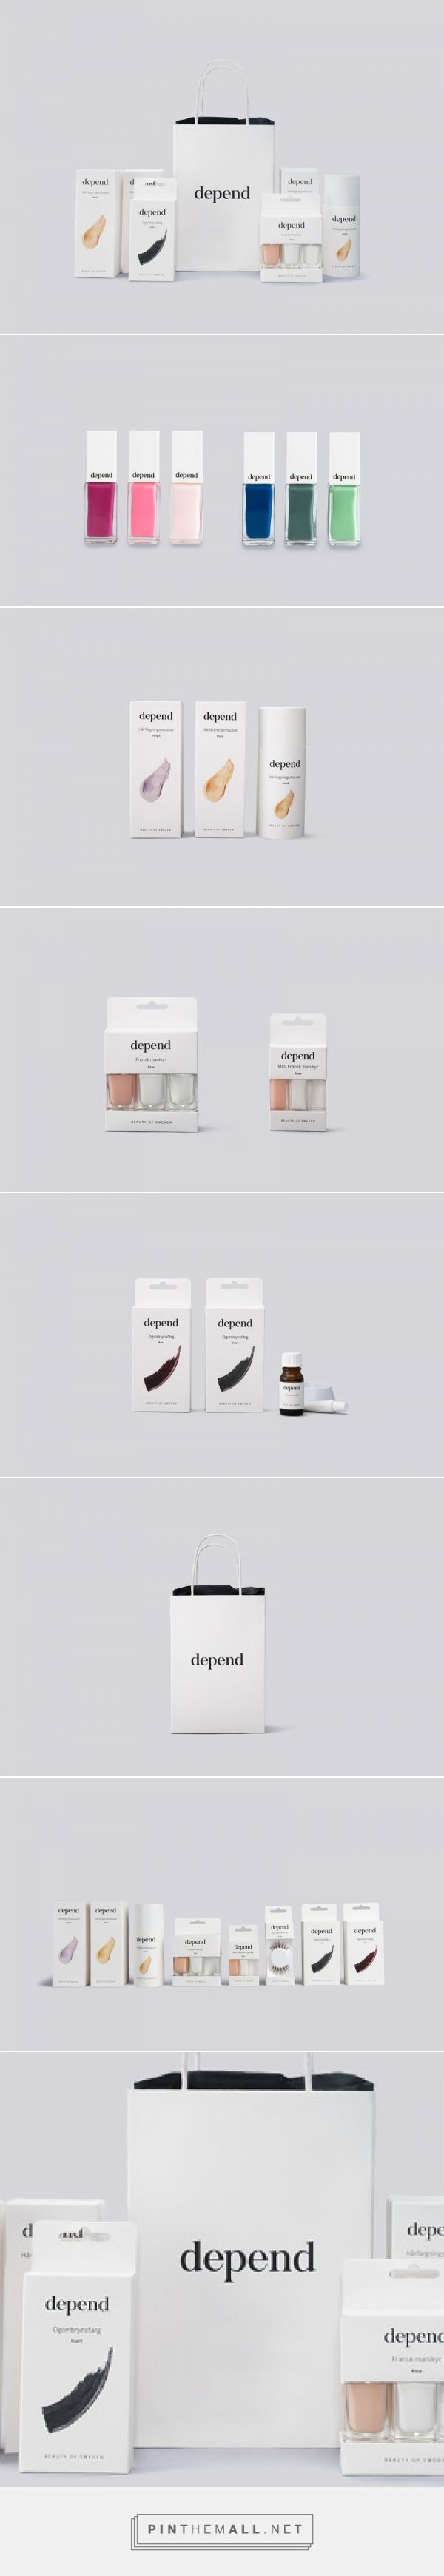 Depend Cosmetics AB - Sandra Kristensson curated by Packaging Diva PD…